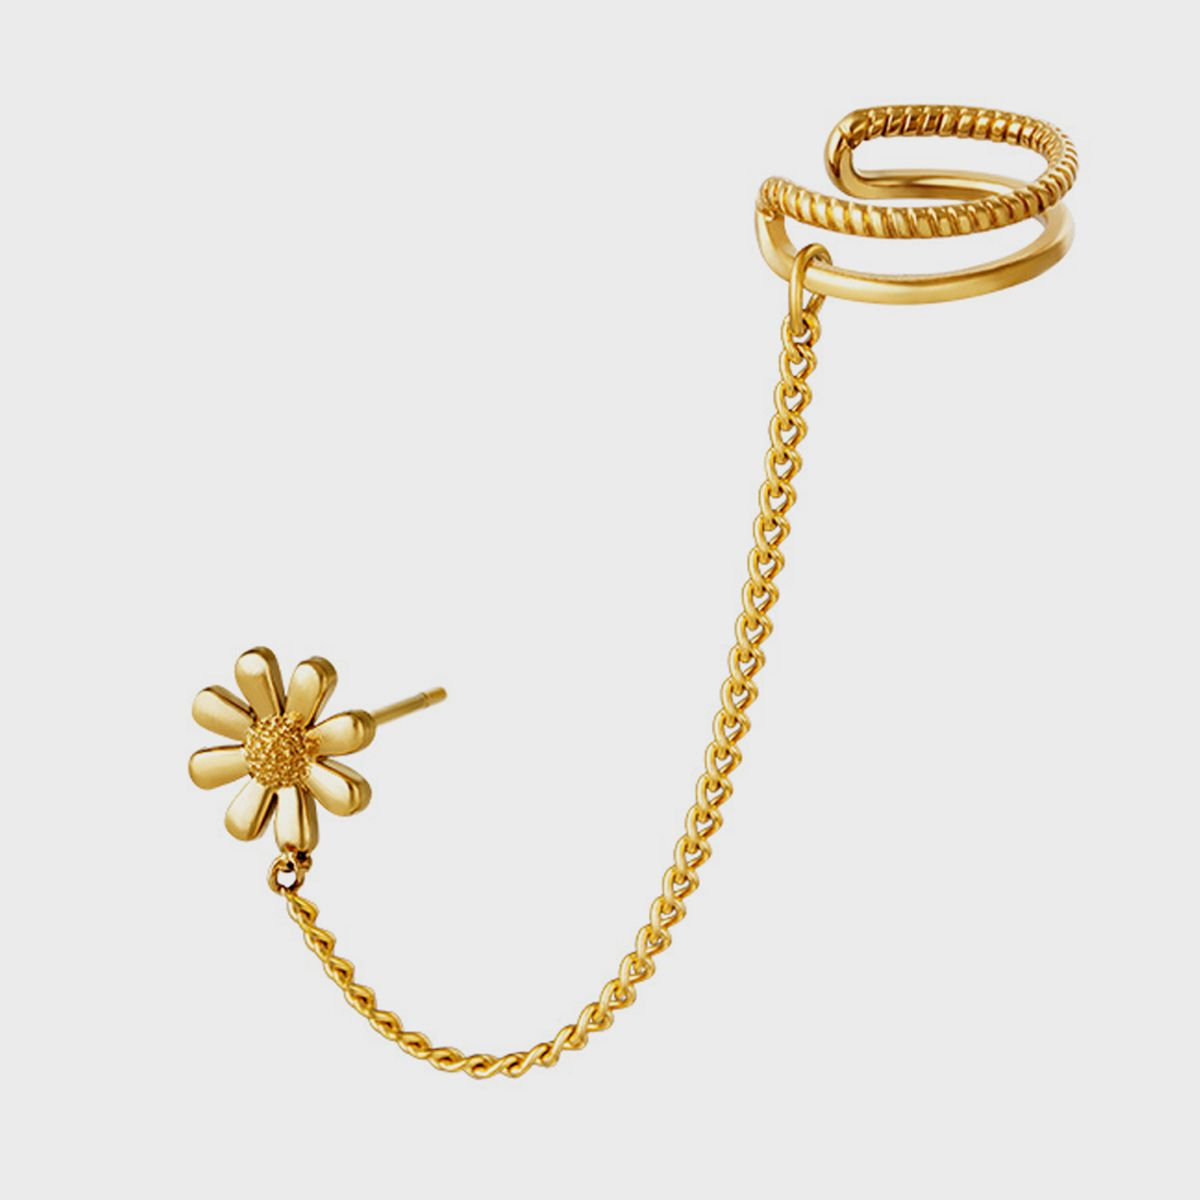 Chained Double Earcuff x Daisy stud